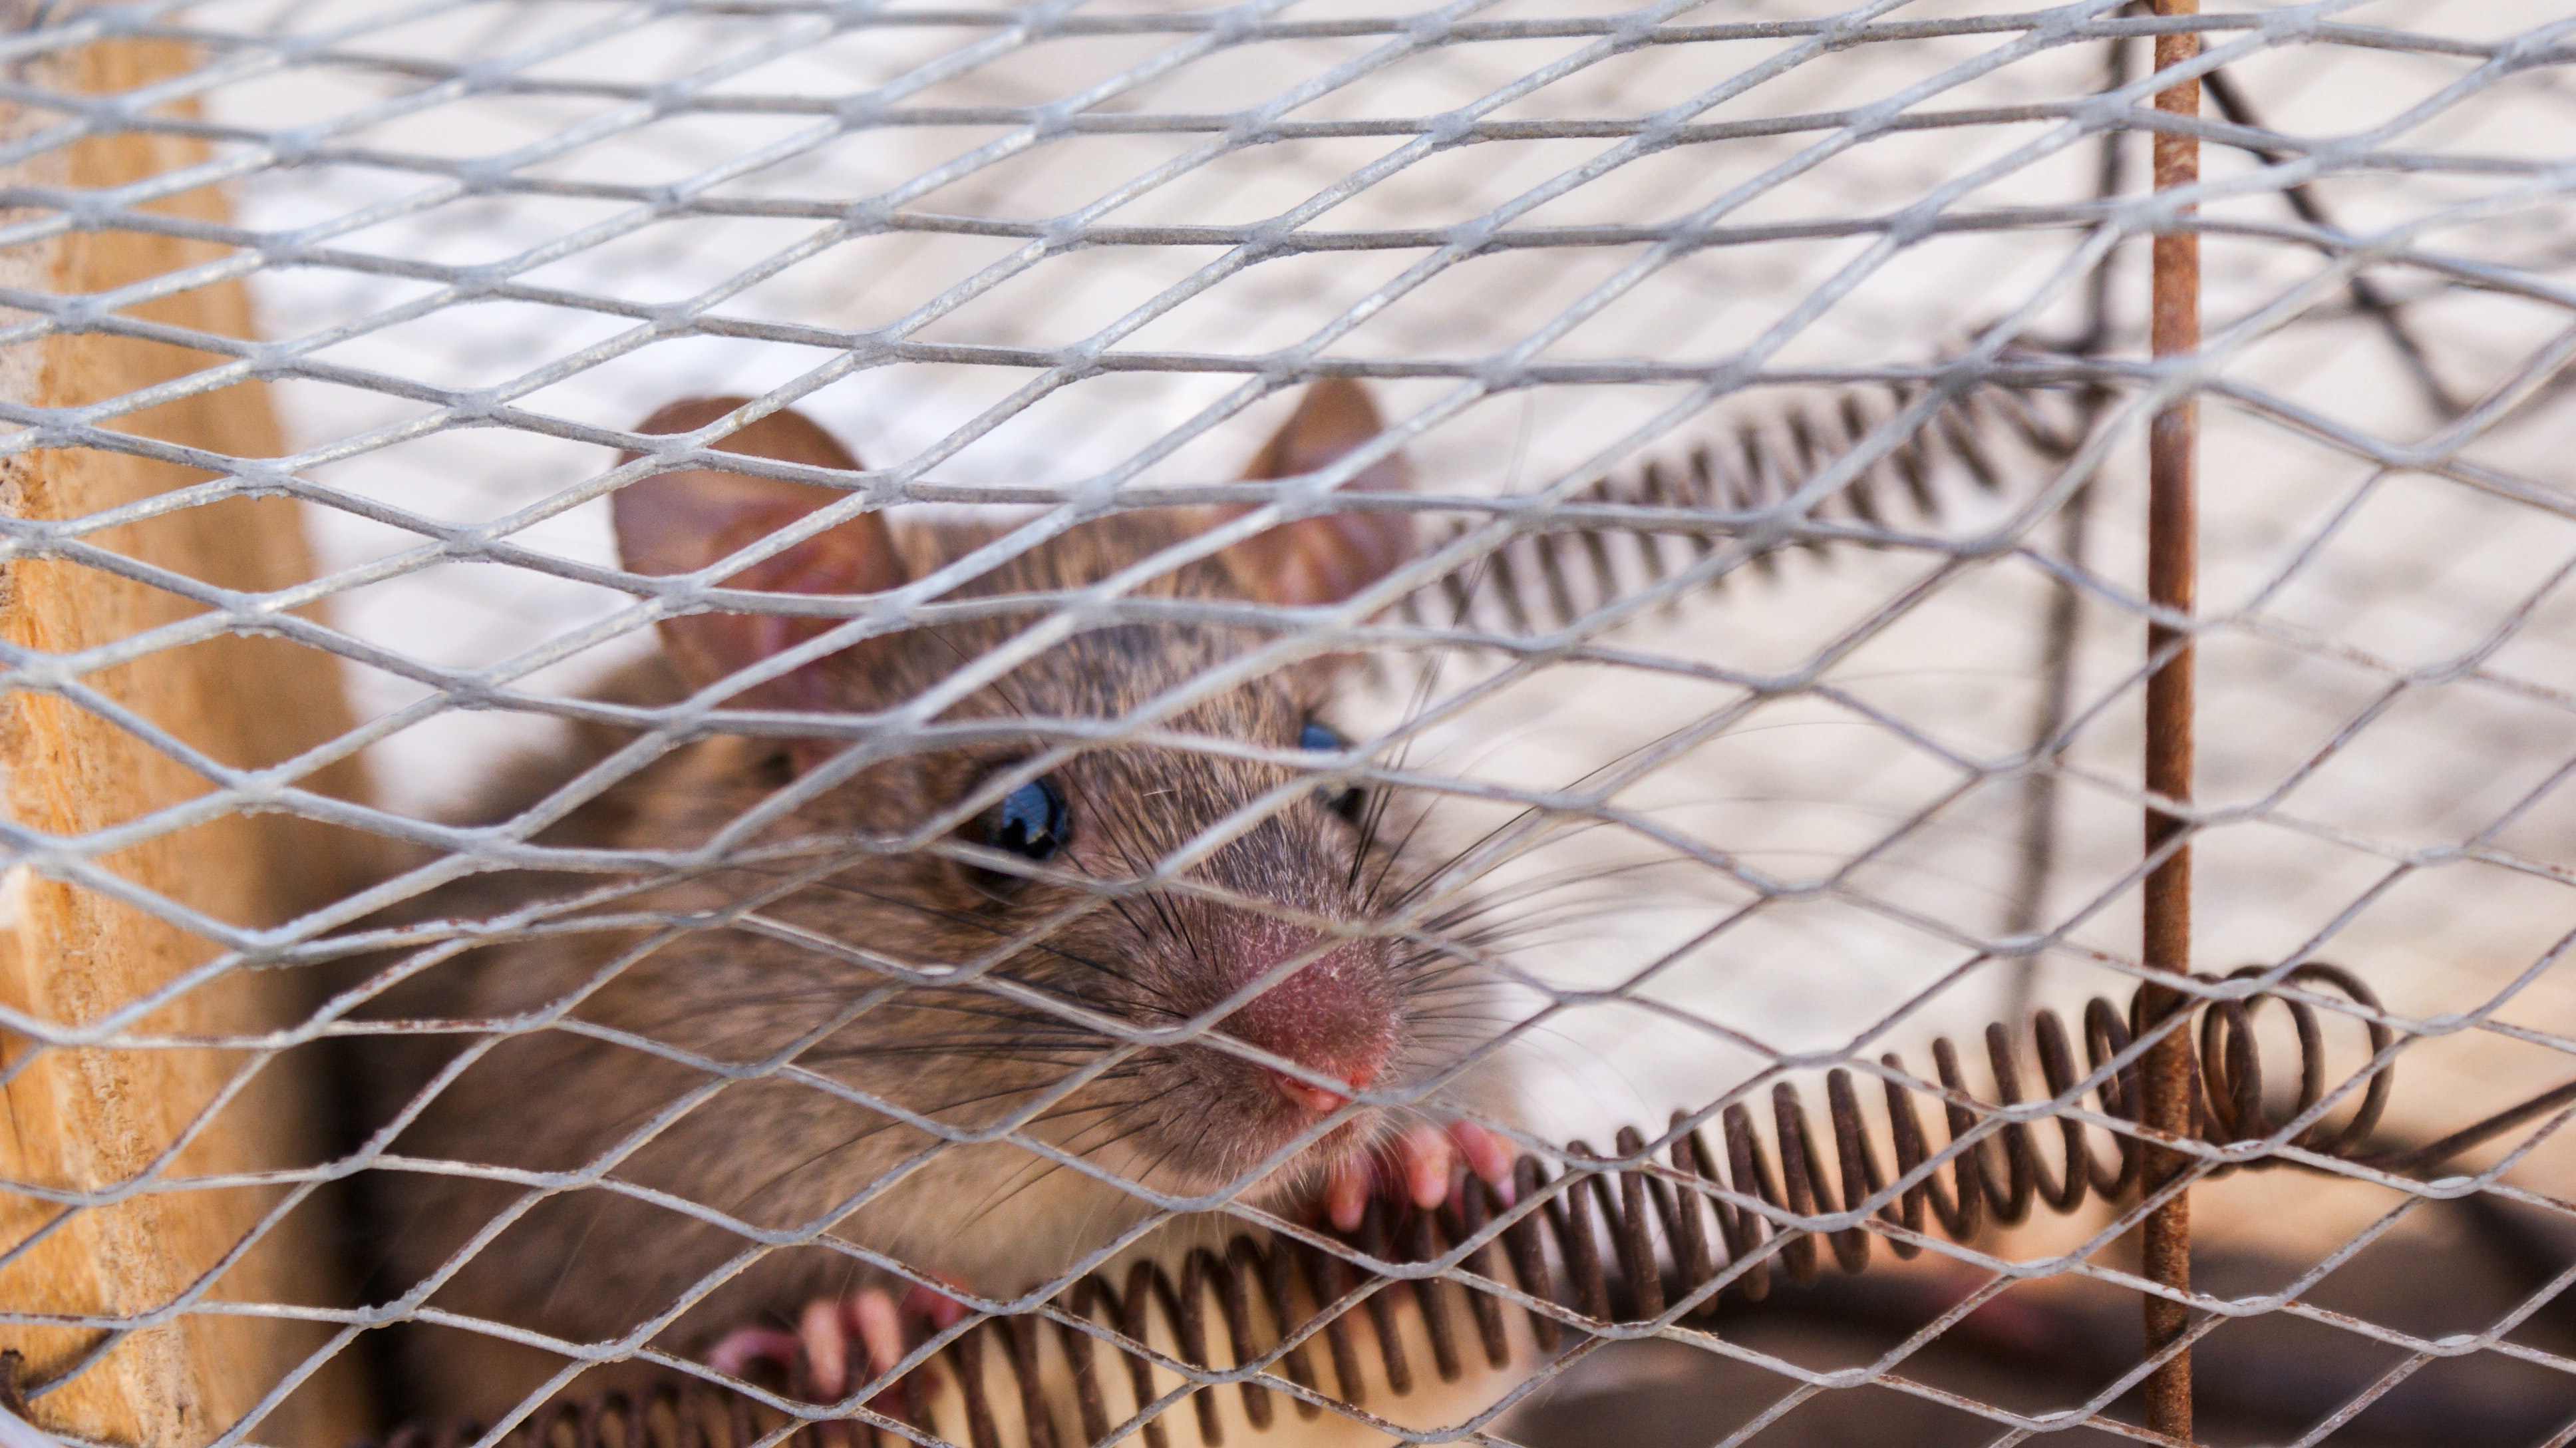 Brown Mouse Inside Mouse Trap During Daytime 183 Free Stock